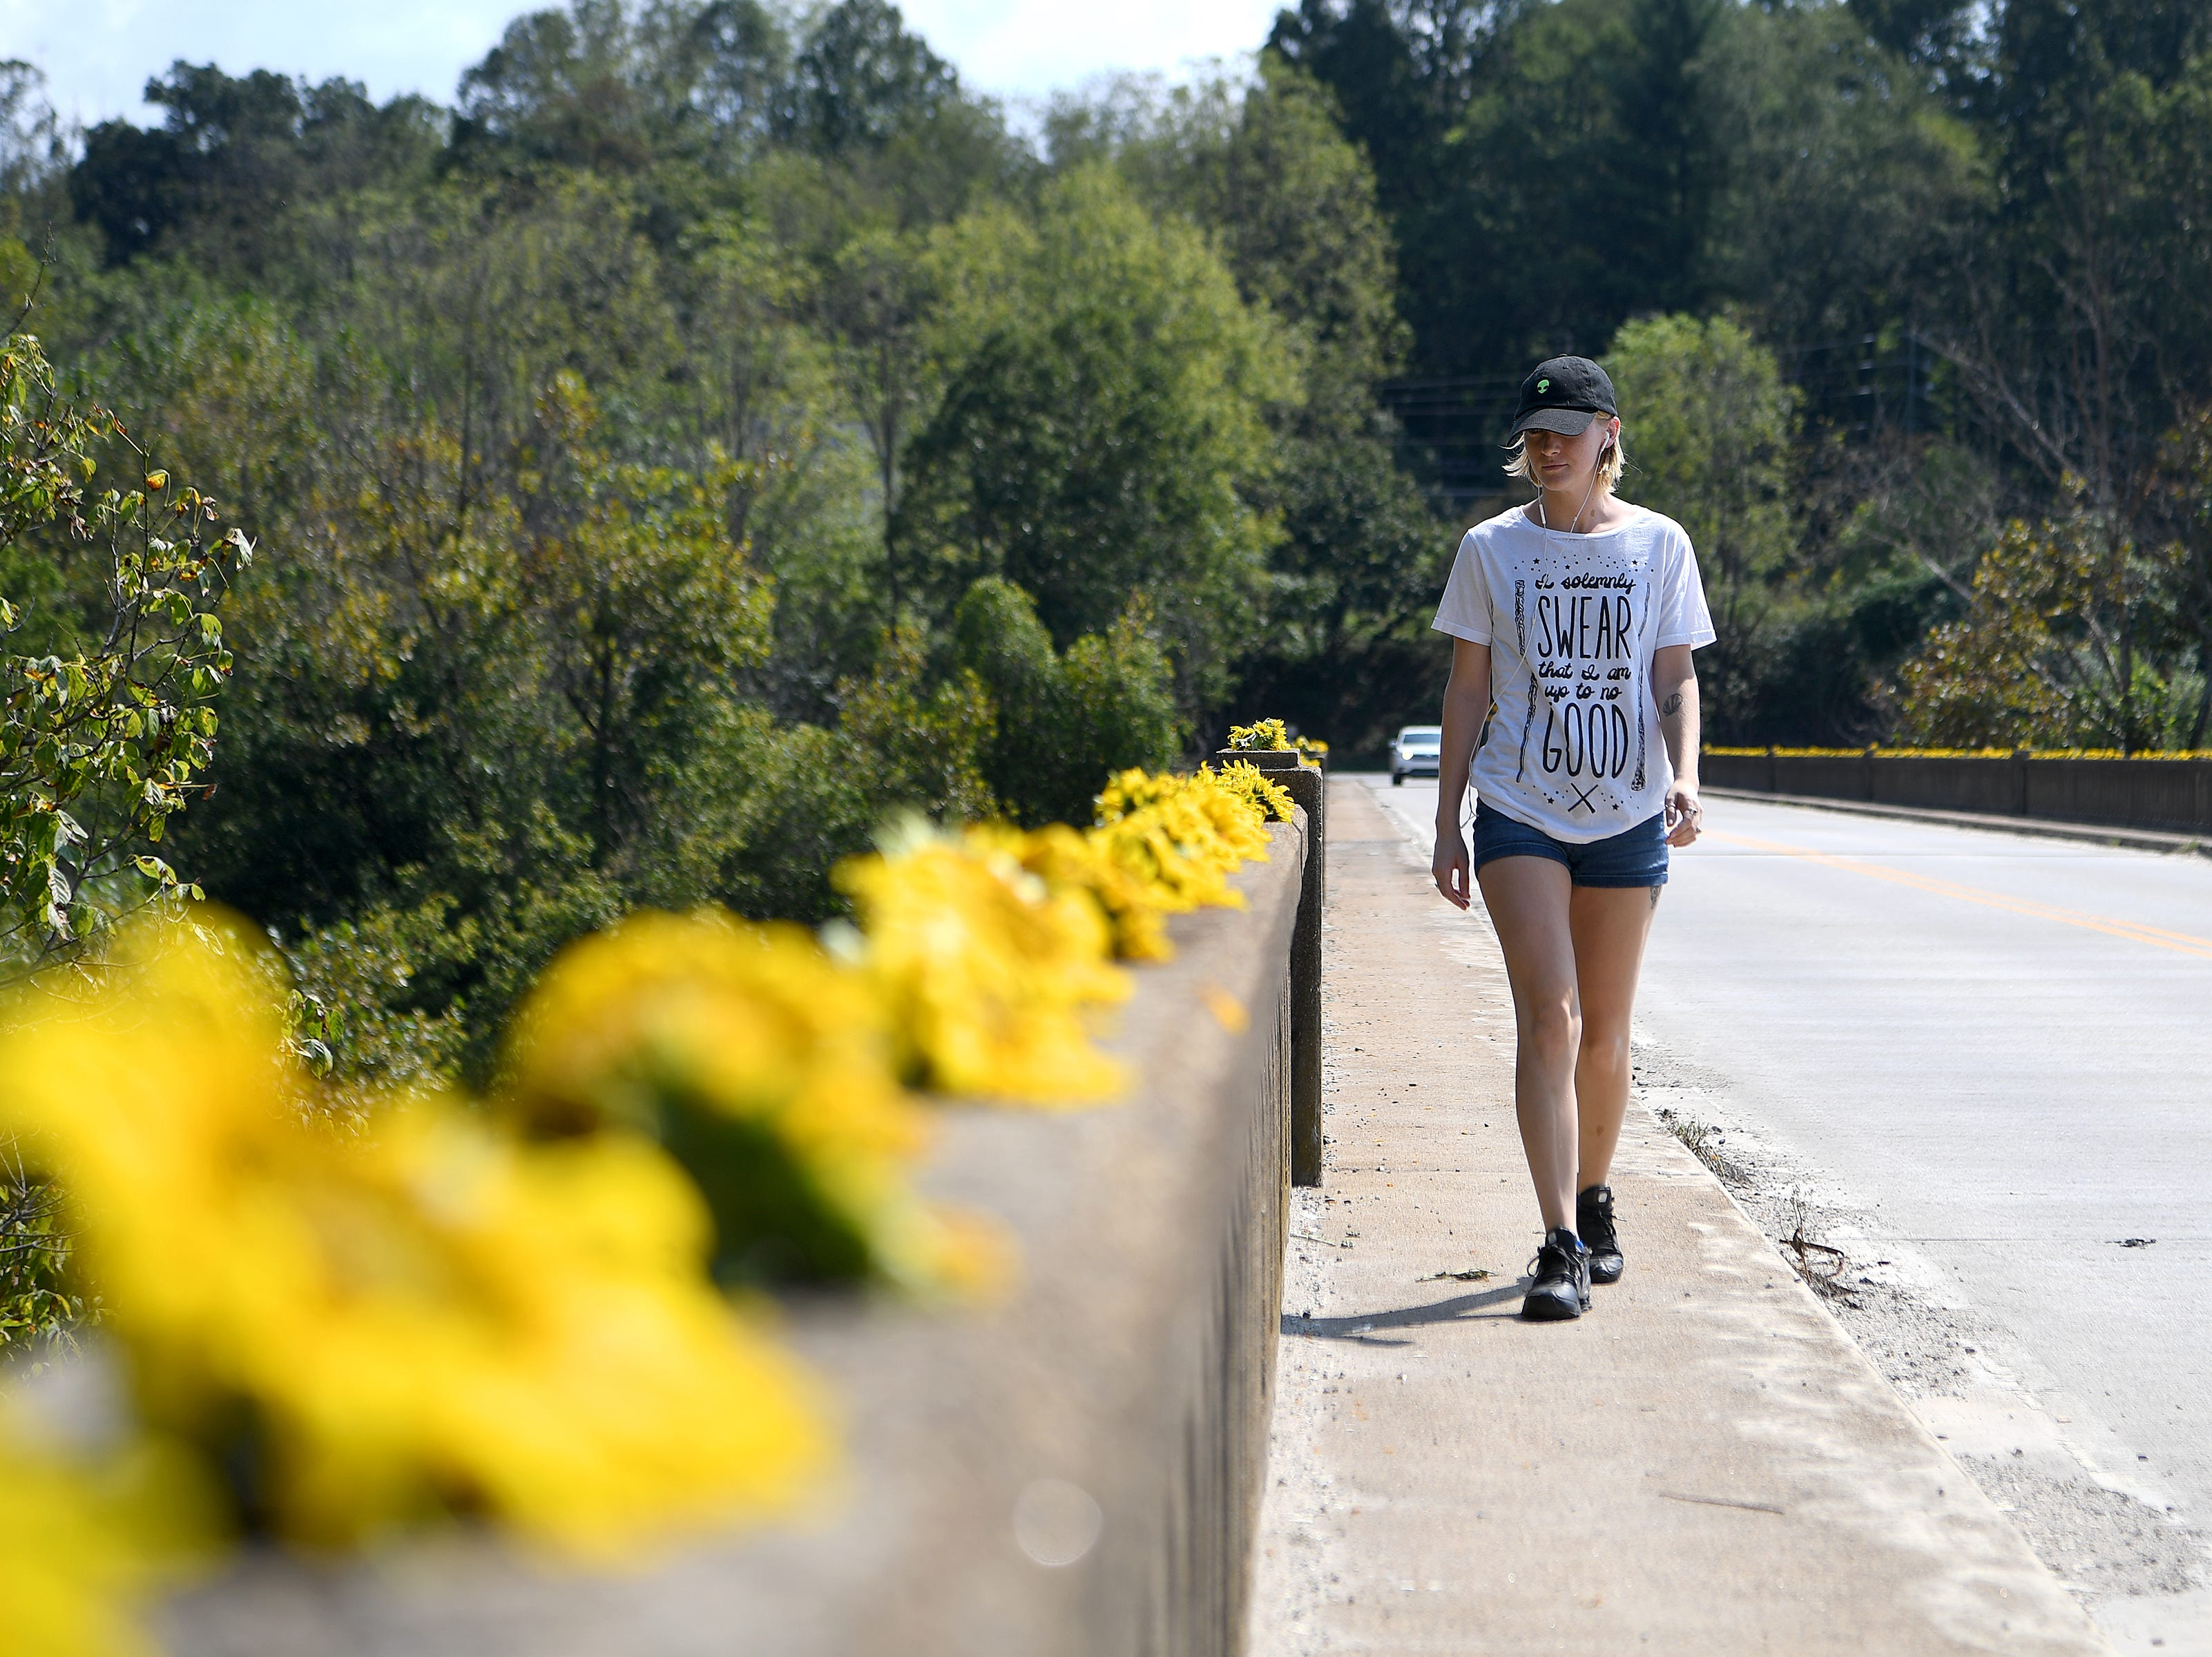 Lydia Powell walks down the Craggy Bridge in Woodfin to check out the row of flowers on the railings on Sept. 19, 2018. The flowers came from the organic farm in the Olivette community and were placed to simply spread joy and community.